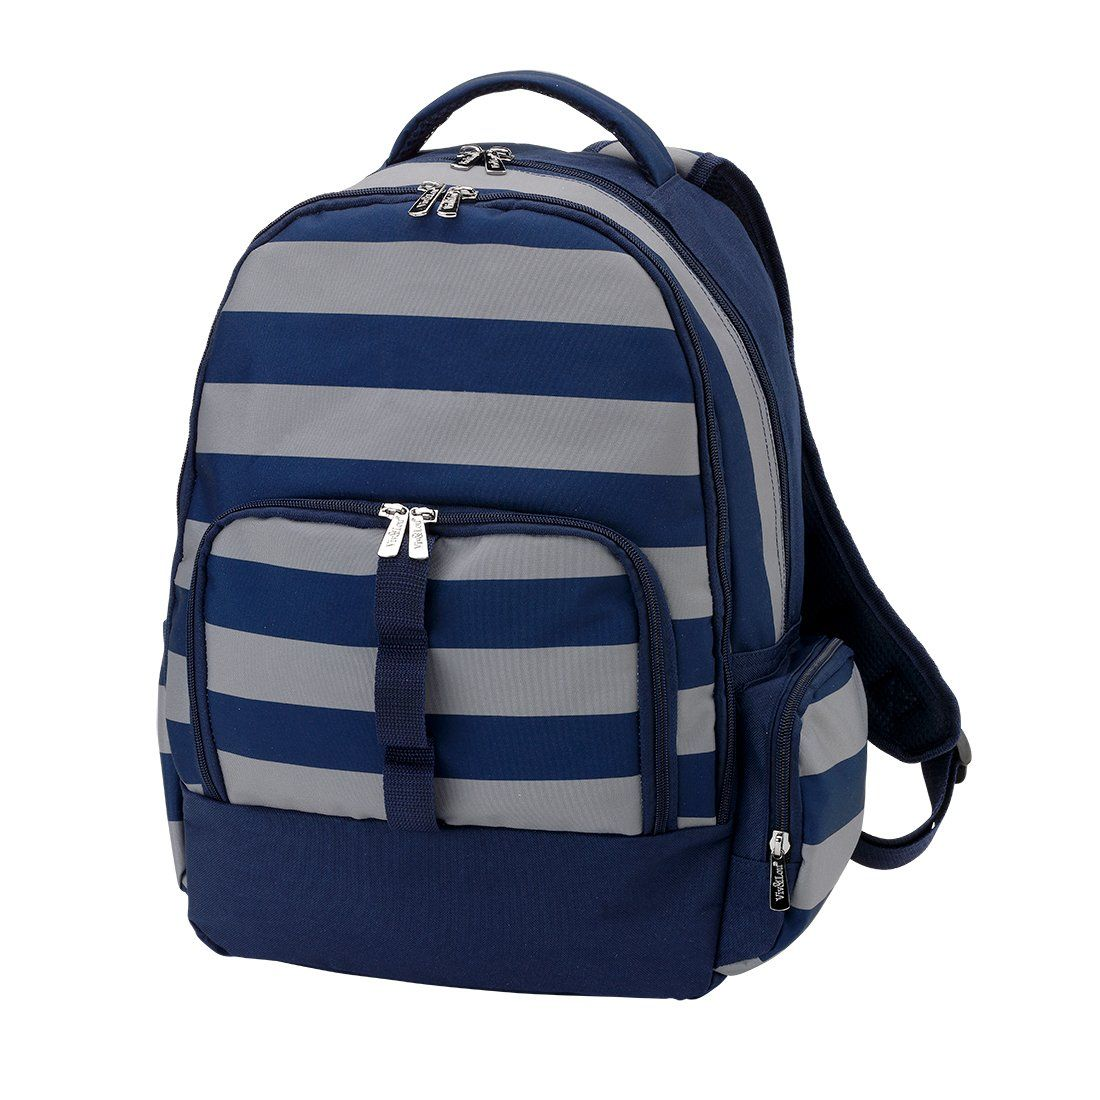 9f1de91684c0 Greyson Backpack - Personalized